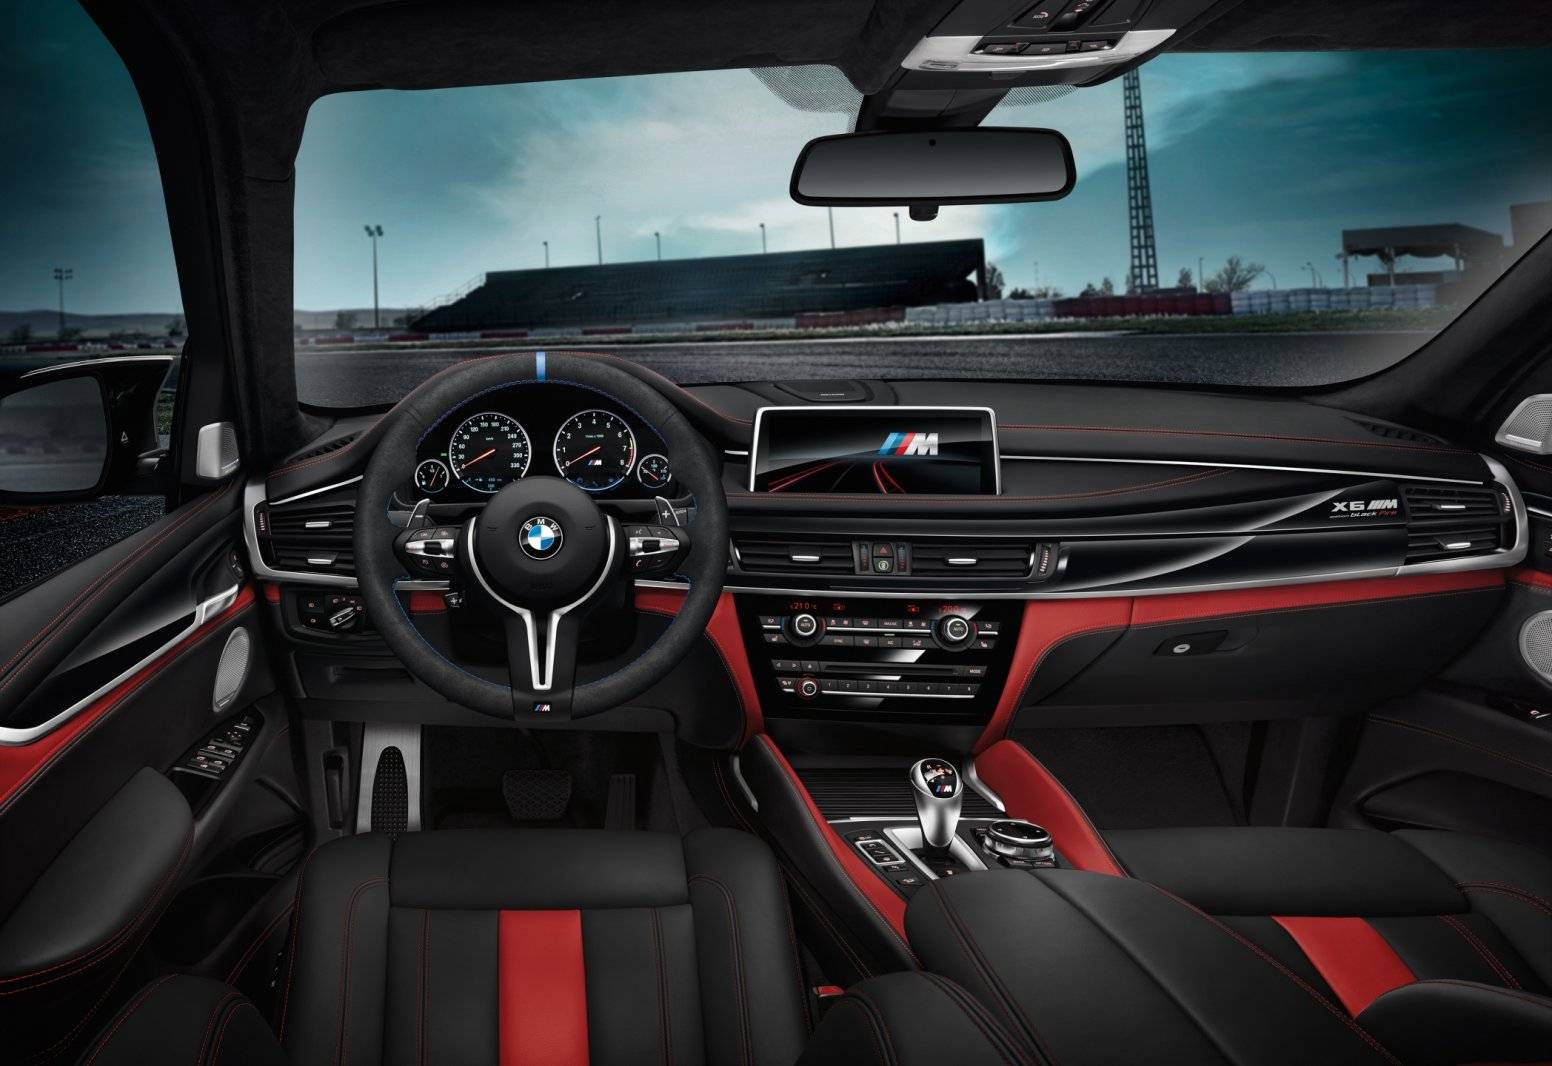 bmw x5 x6 m black fire edition fotogalleries. Black Bedroom Furniture Sets. Home Design Ideas